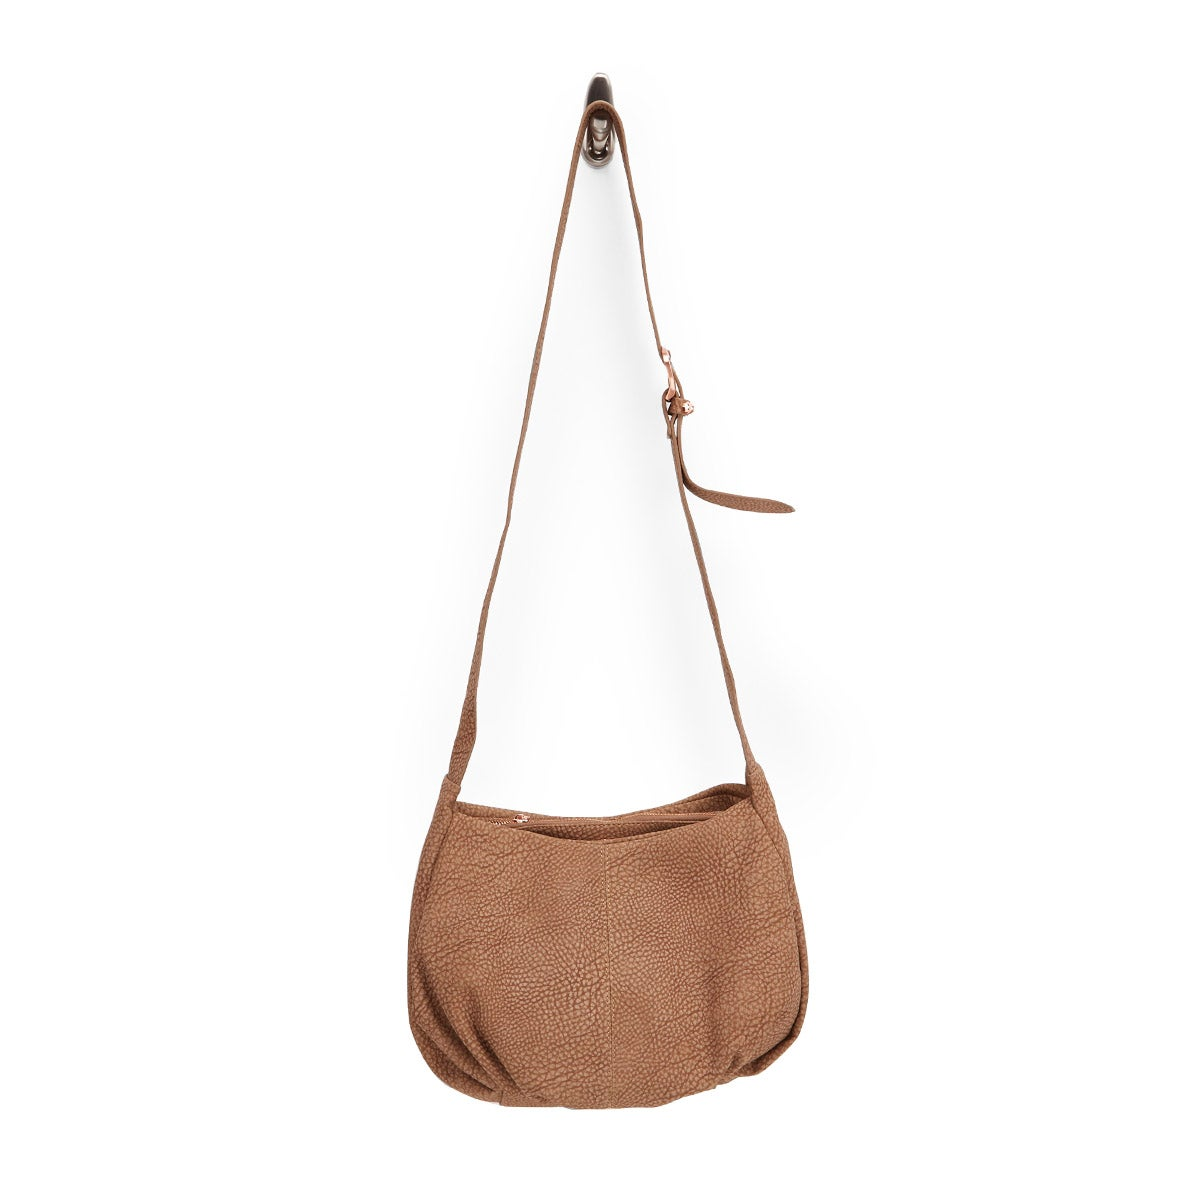 Lds sand 3 compartment cross body bag